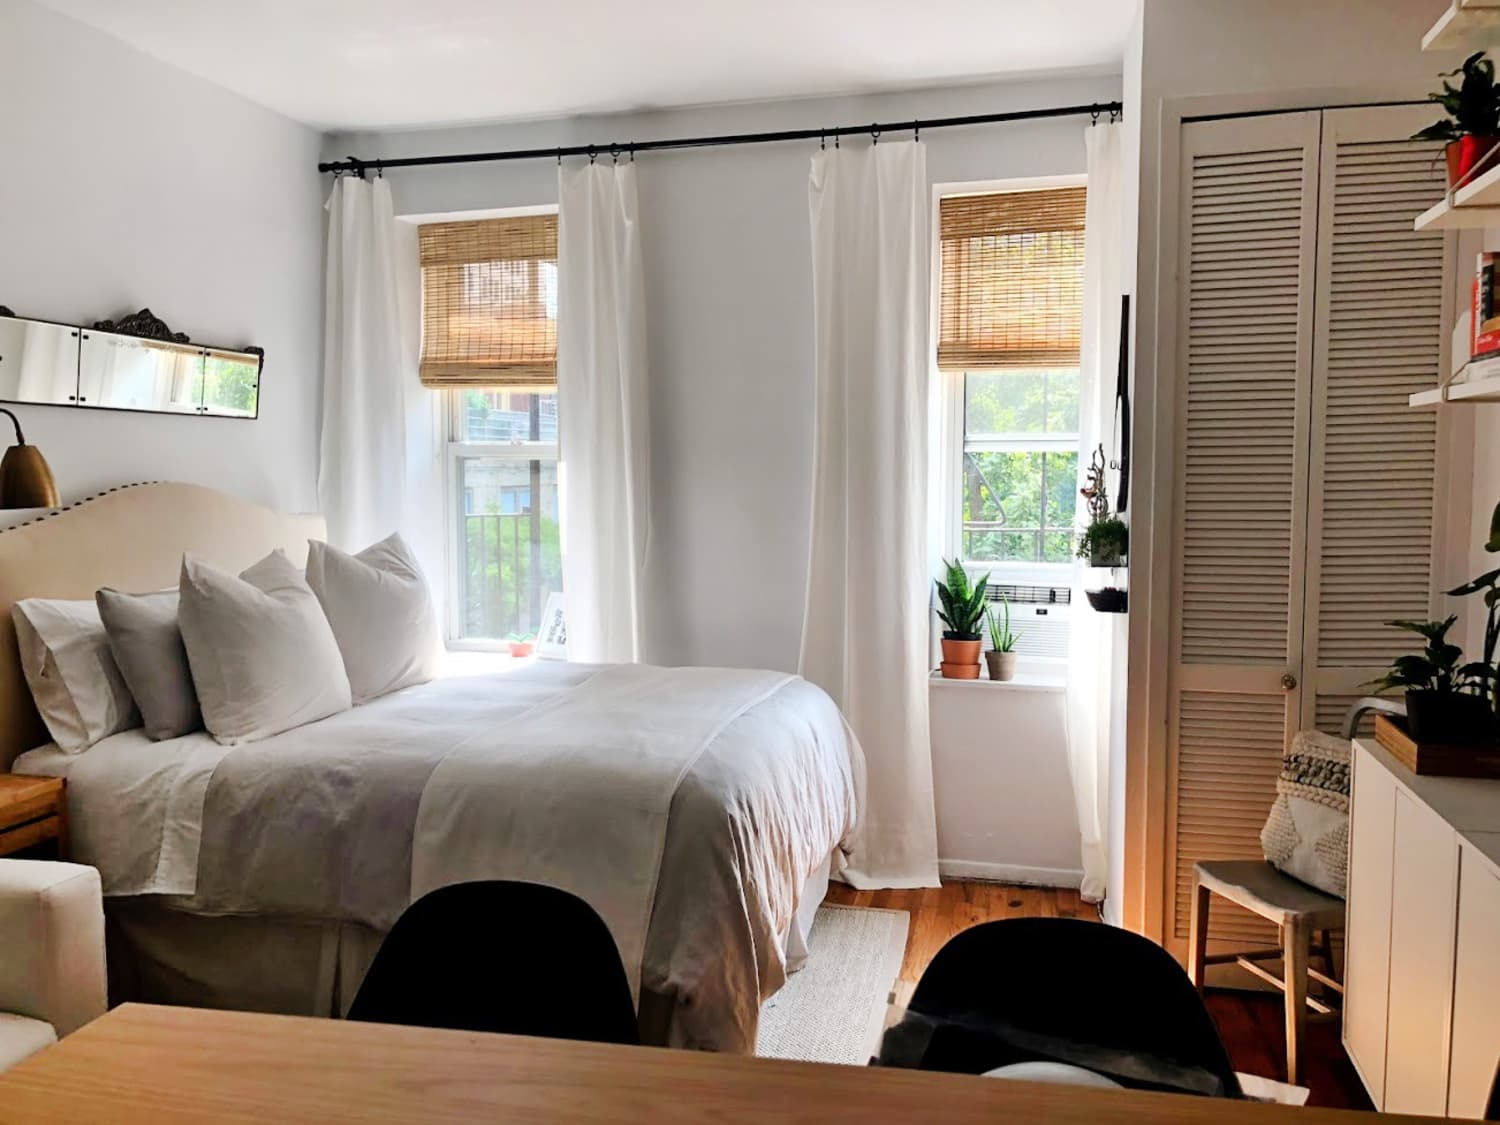 This Designer Trick Will Make Your Window Treatments Look Way More Expensive than They Are